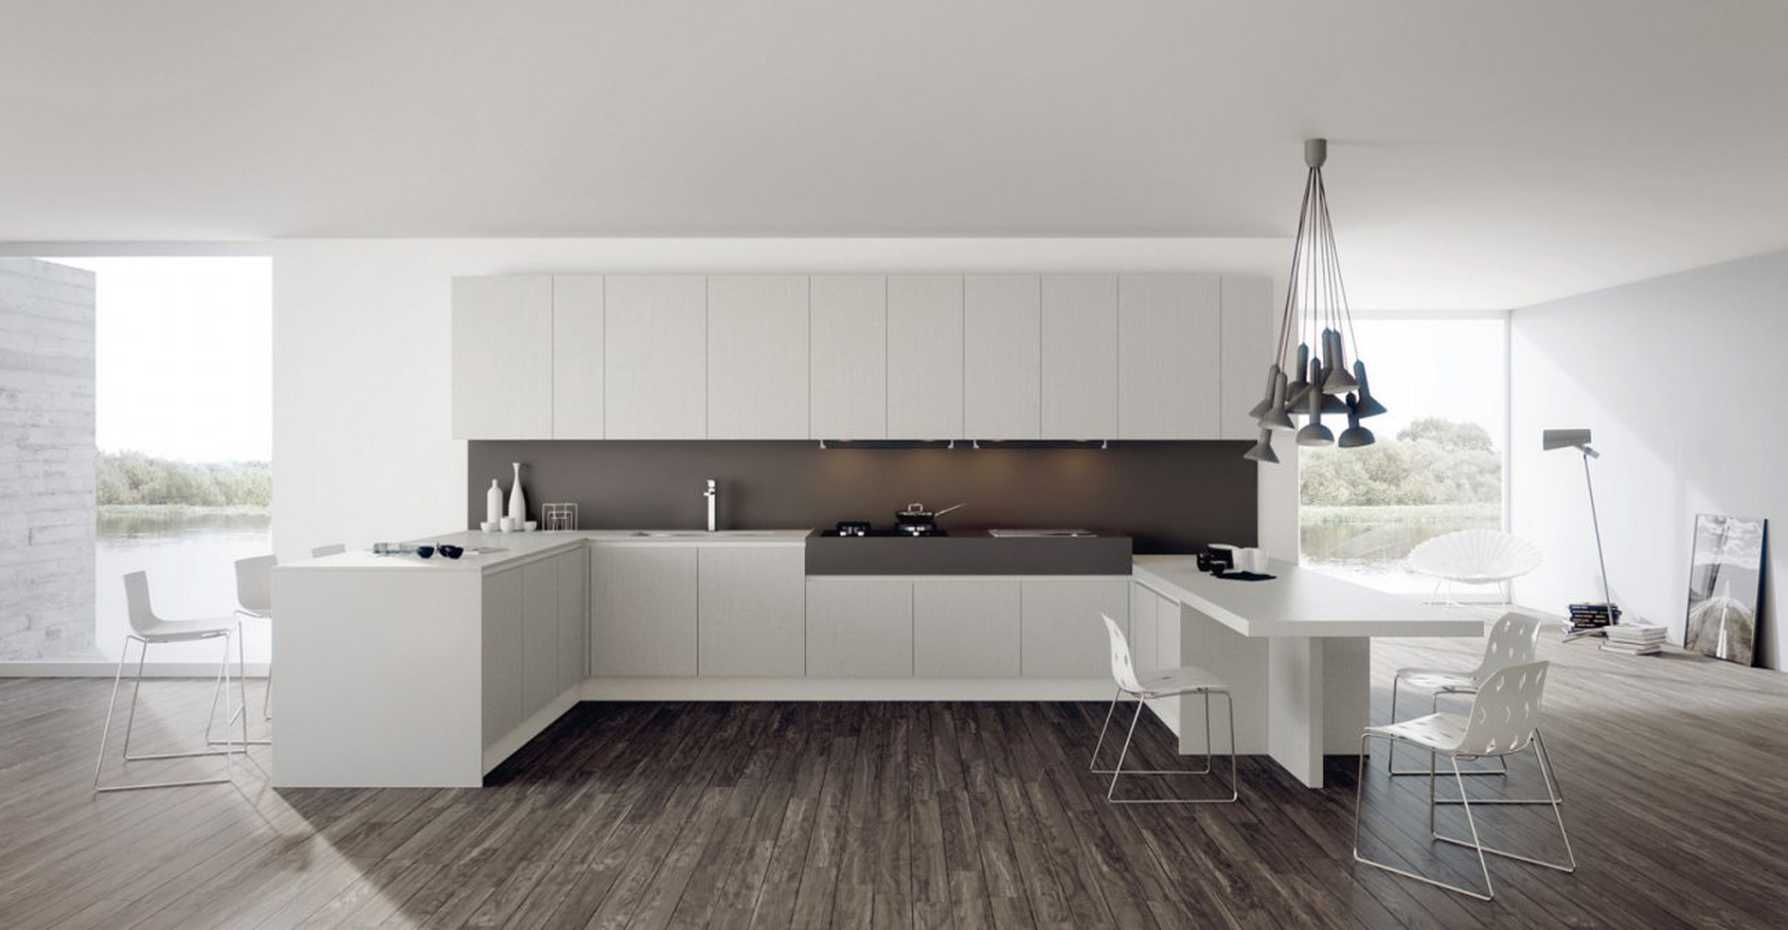 Simply by Doimo Cucine product image 5